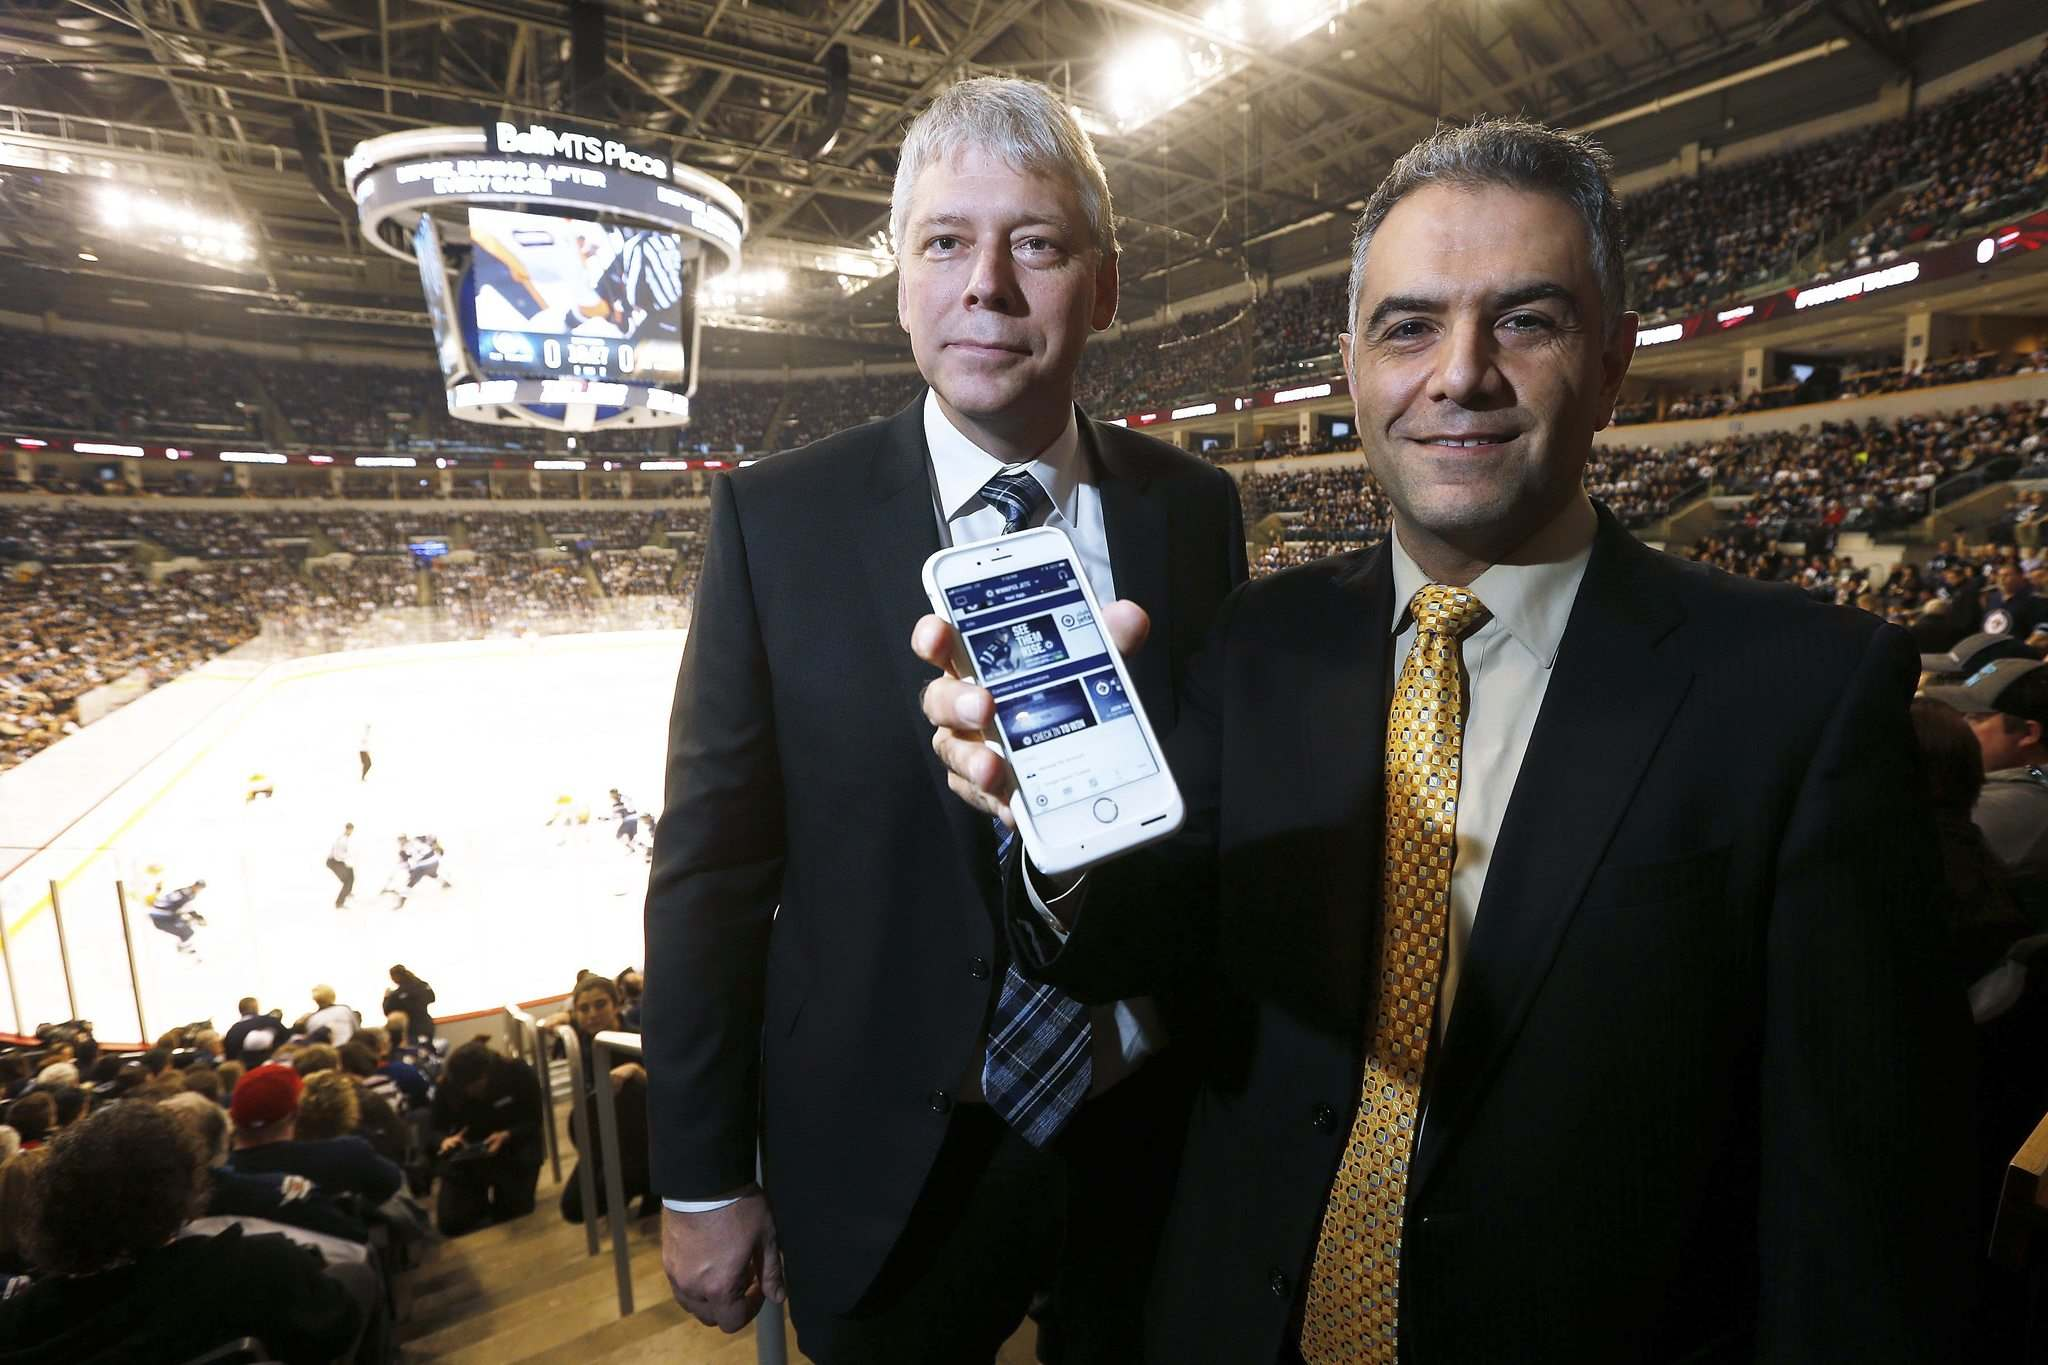 JOHN WOODS / WINNIPEG FREE PRESS</p><p>True North Sports & Entertainment chief operating officer John Olfert (left) and Fannex founder Kemal Leslie are excited to start pitching Fannex's interactive fan app to 800-plus sports teams across North America.</p></p>